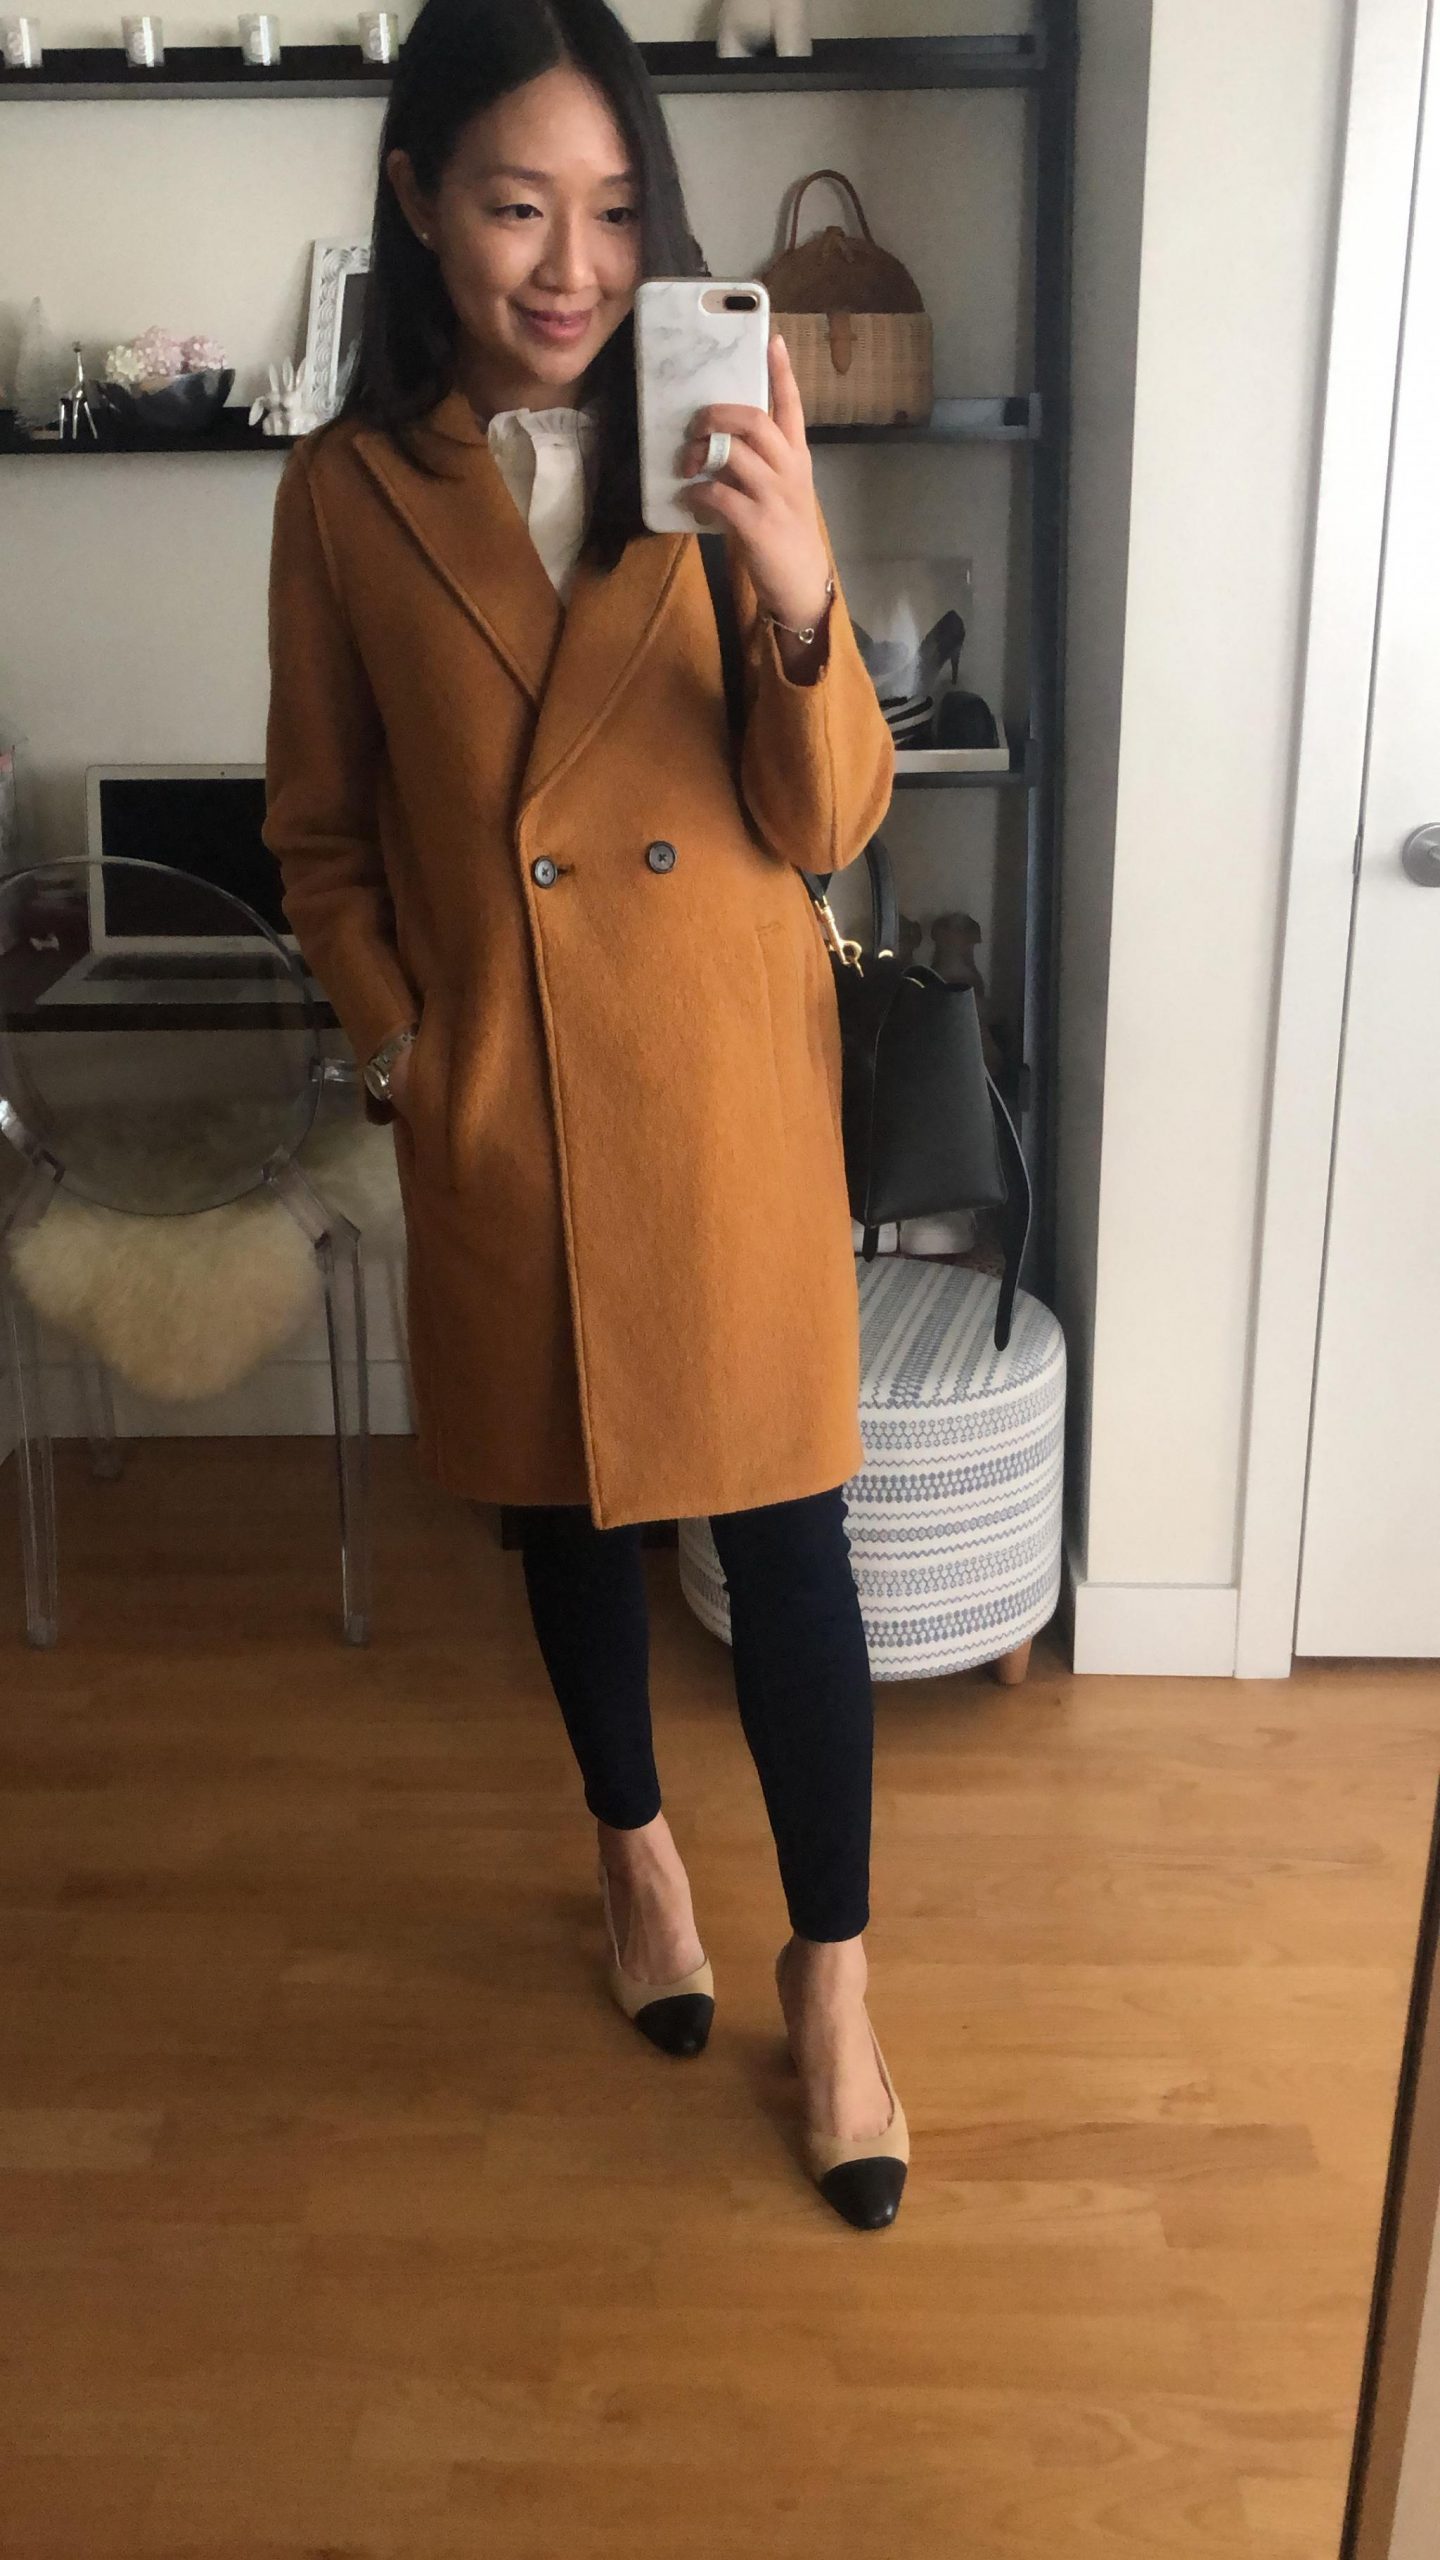 J.Crew Daphne topcoat in Italian boiled wool in warm caramel, size  00 regular